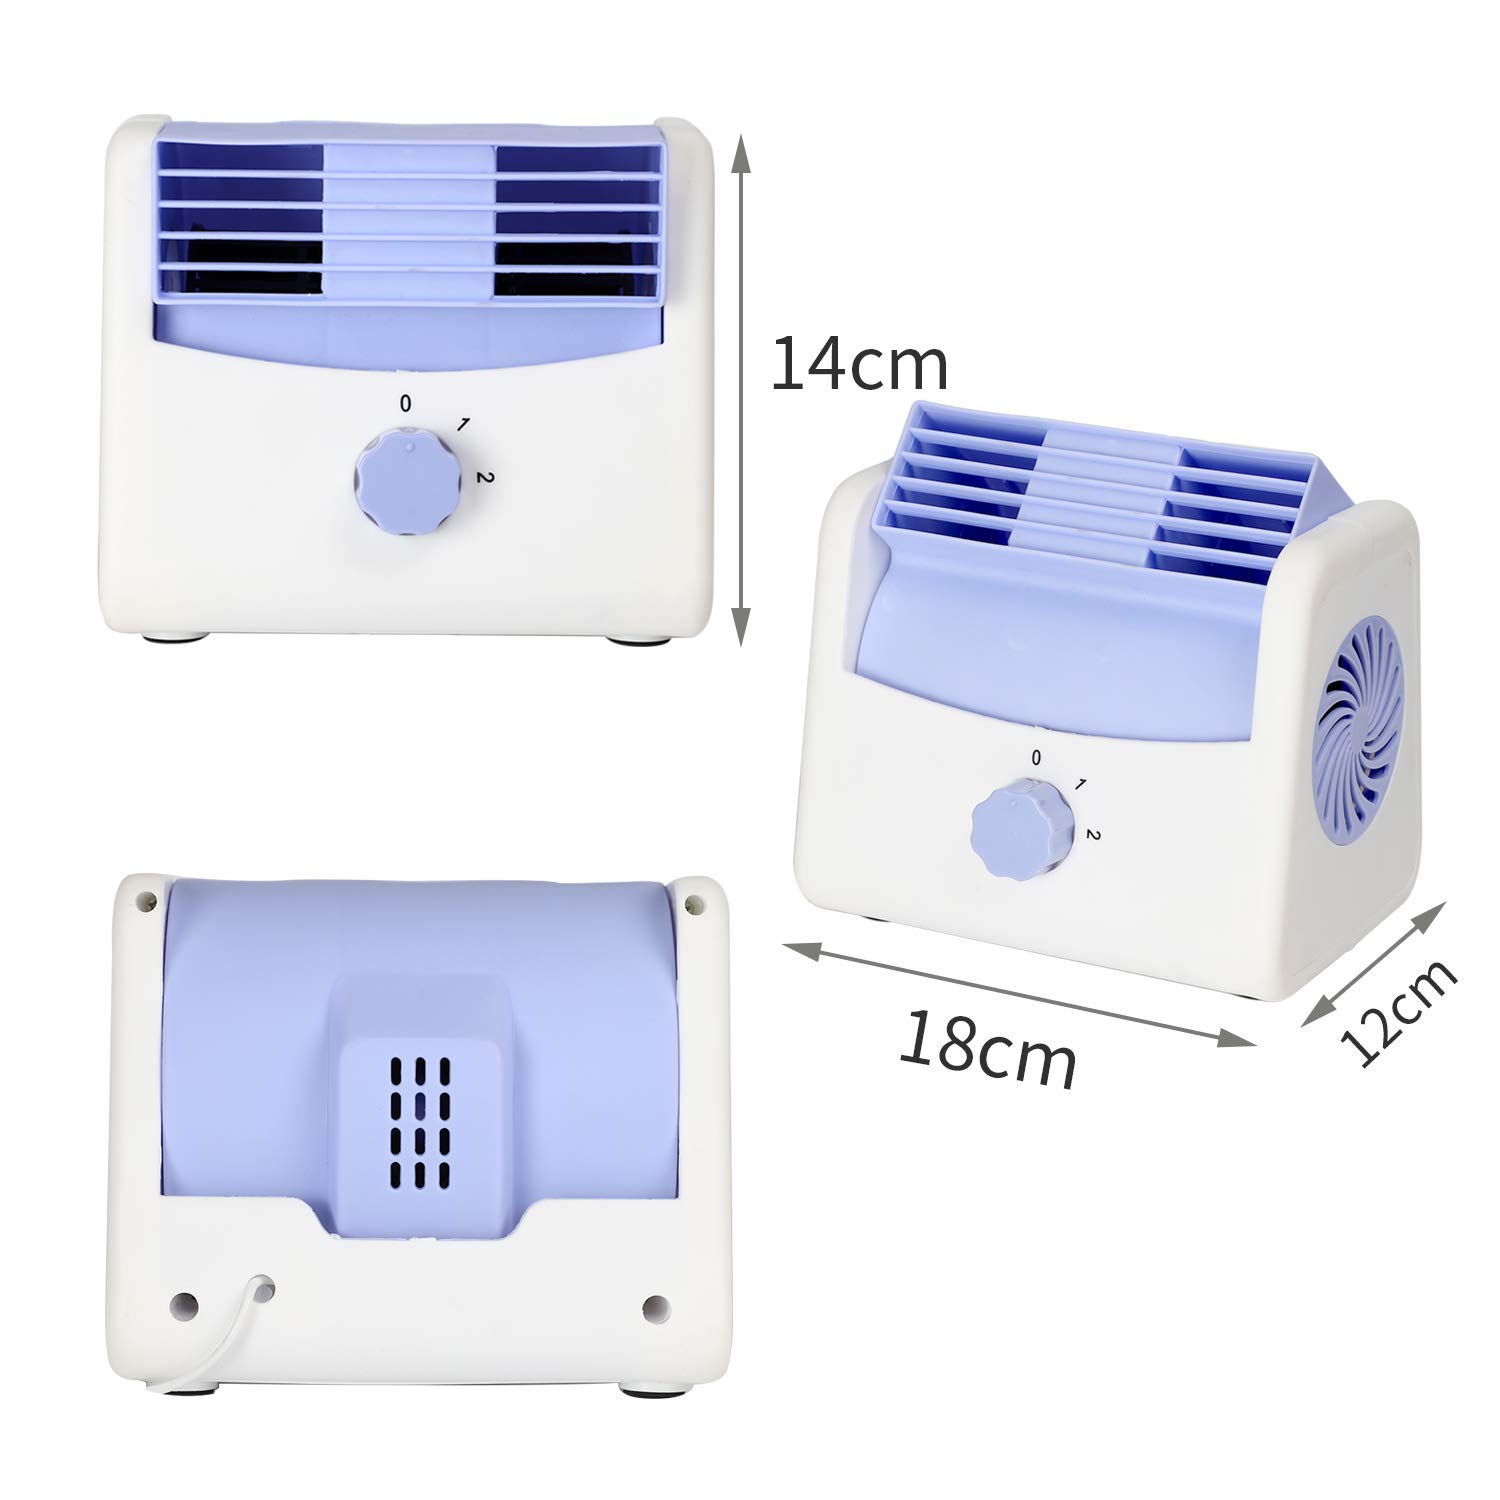 SUVs 12V DC Cooling Air Circulation Fan Trucks and Boats 2-Speed Adjustable Air Outlet Safe Leafless Fan for Cars STYLOOC Automotive Cooling Fan